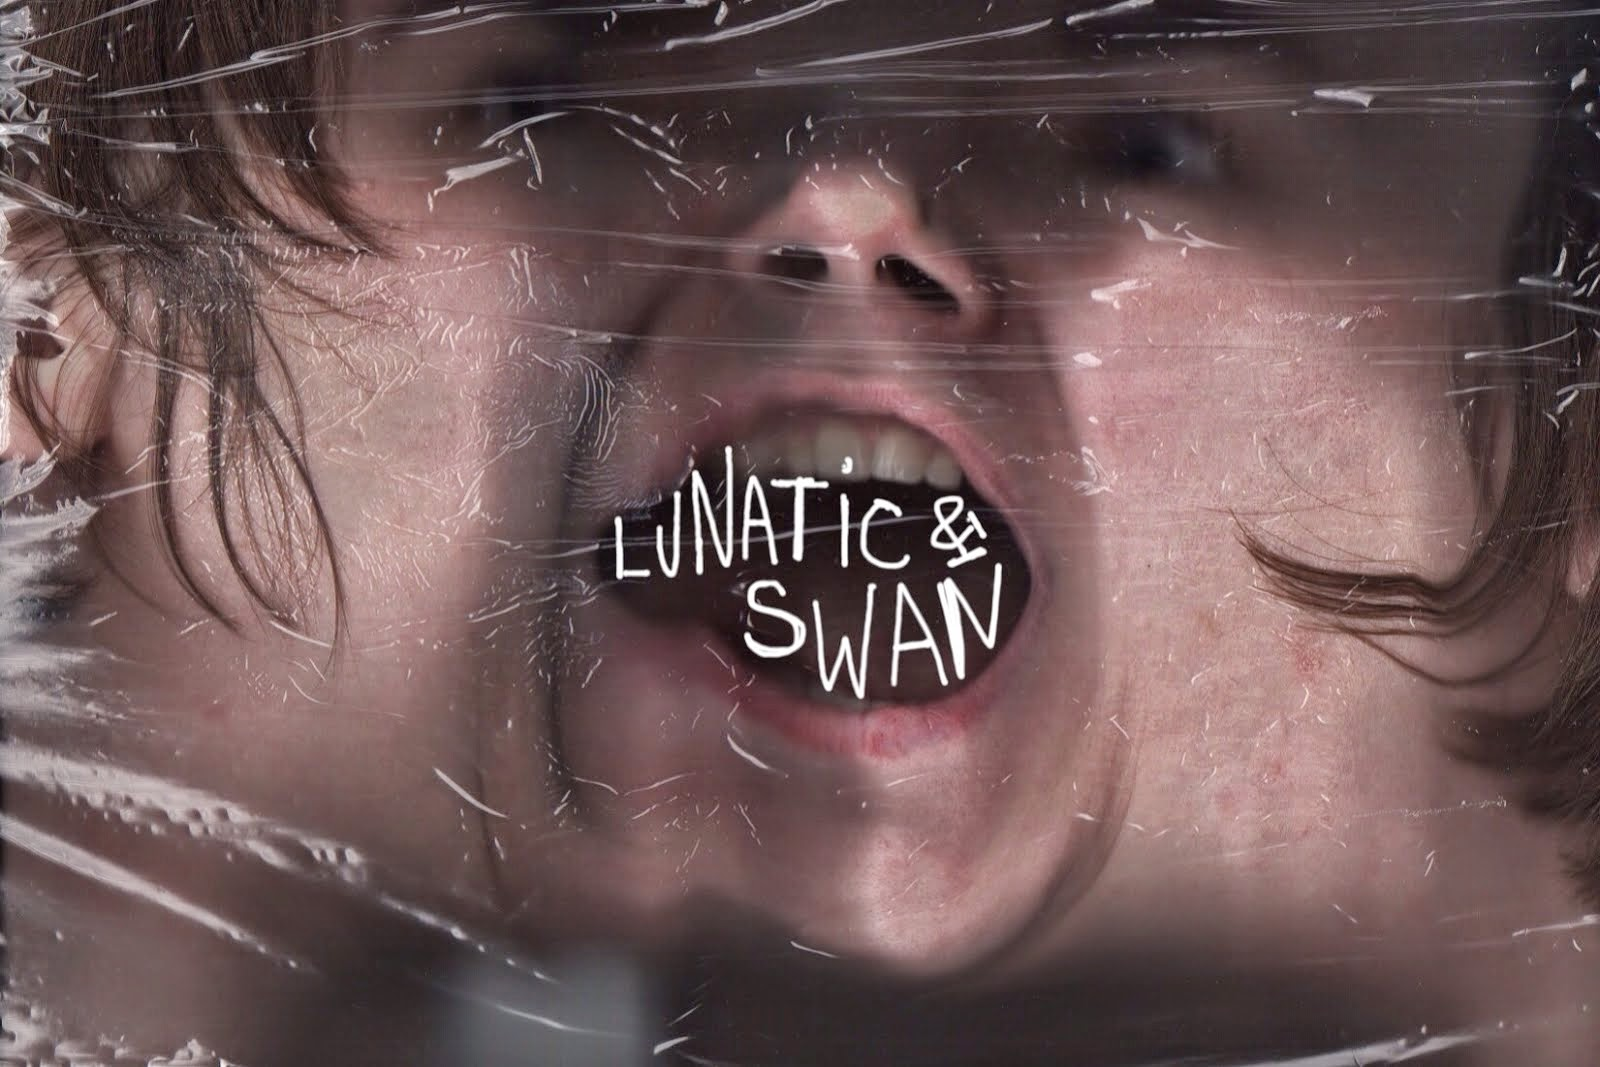 The Lunatic & The Swan